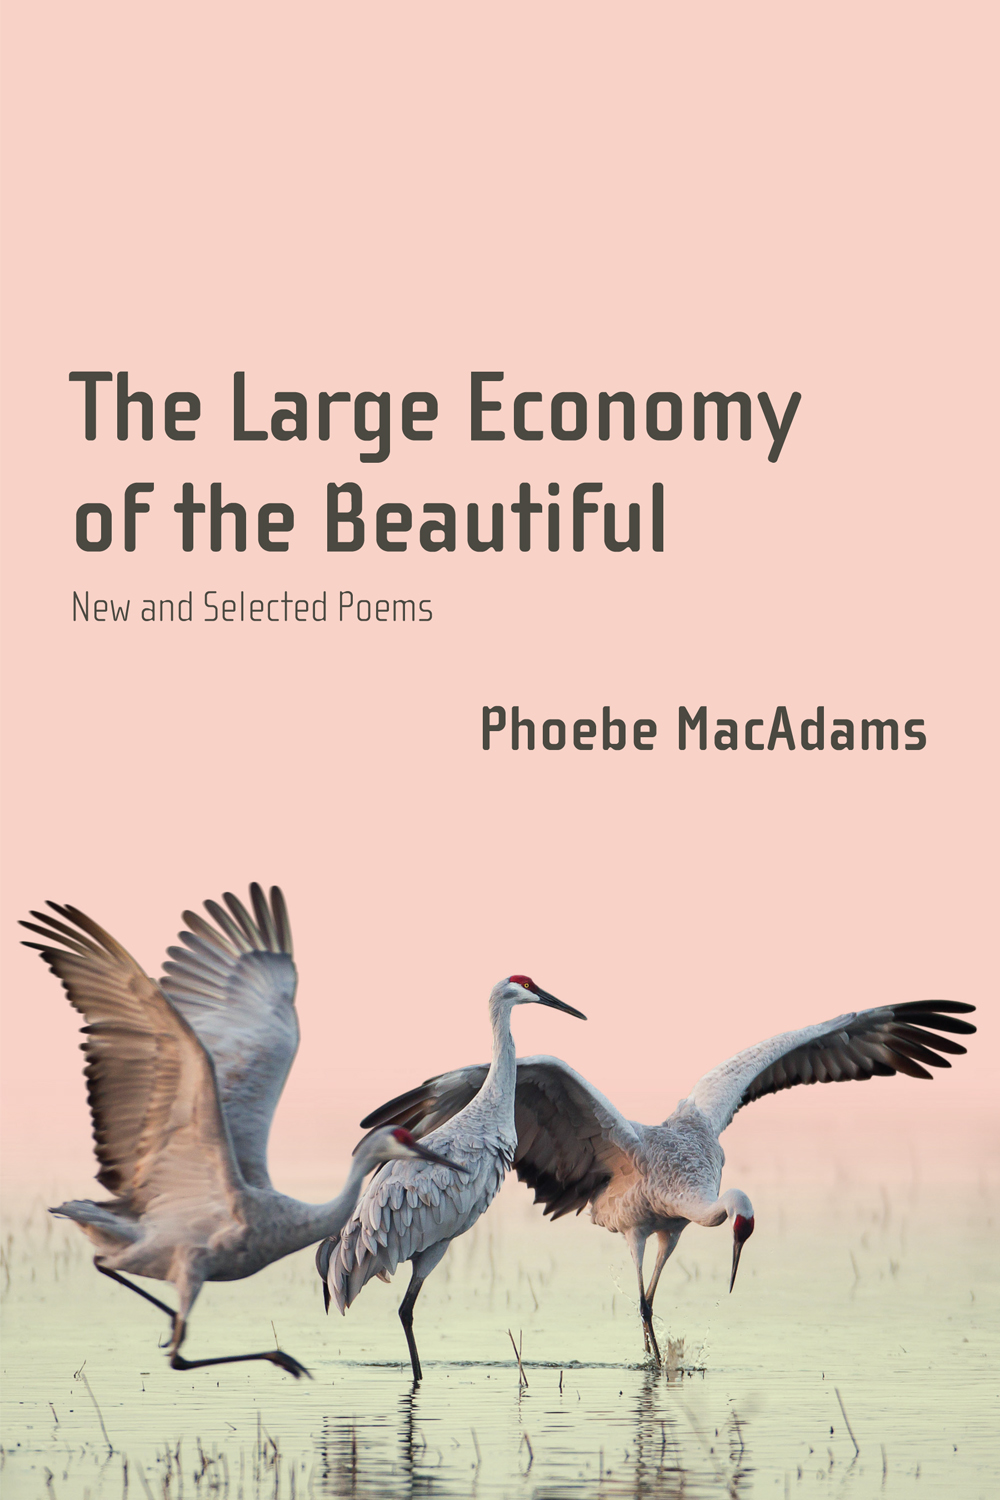 The Large Economy of the Beautiful: New and Selected Poems